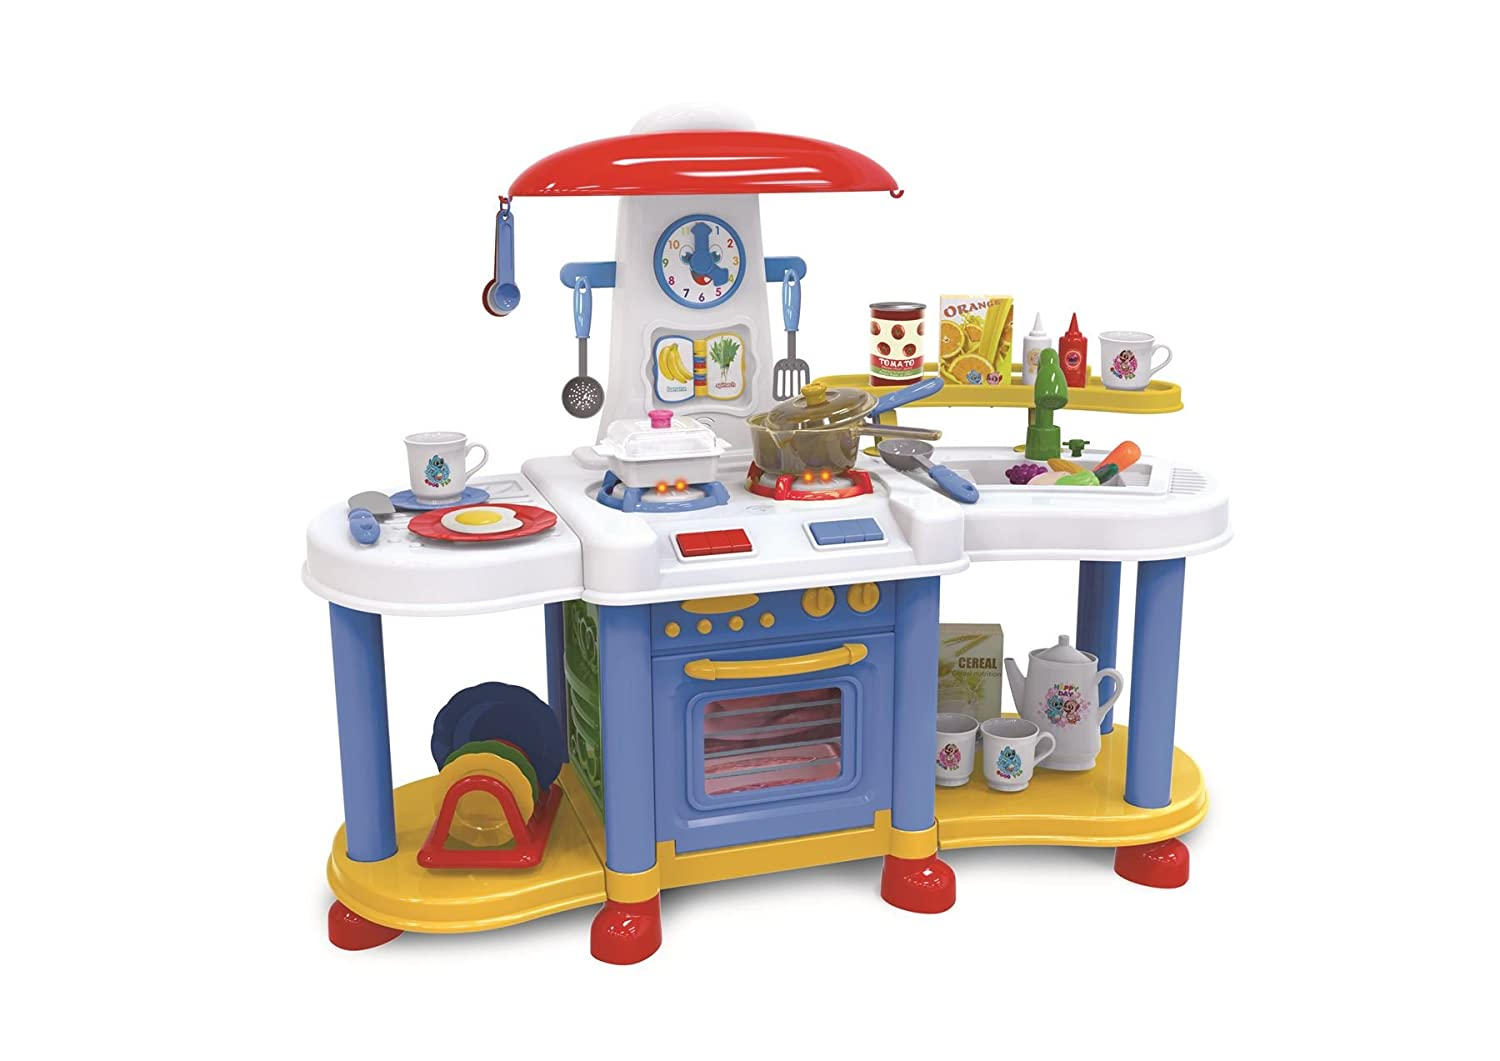 Vinsani Blue Little Kitchen Food Cooking Gas Oven Appliances Toy ...